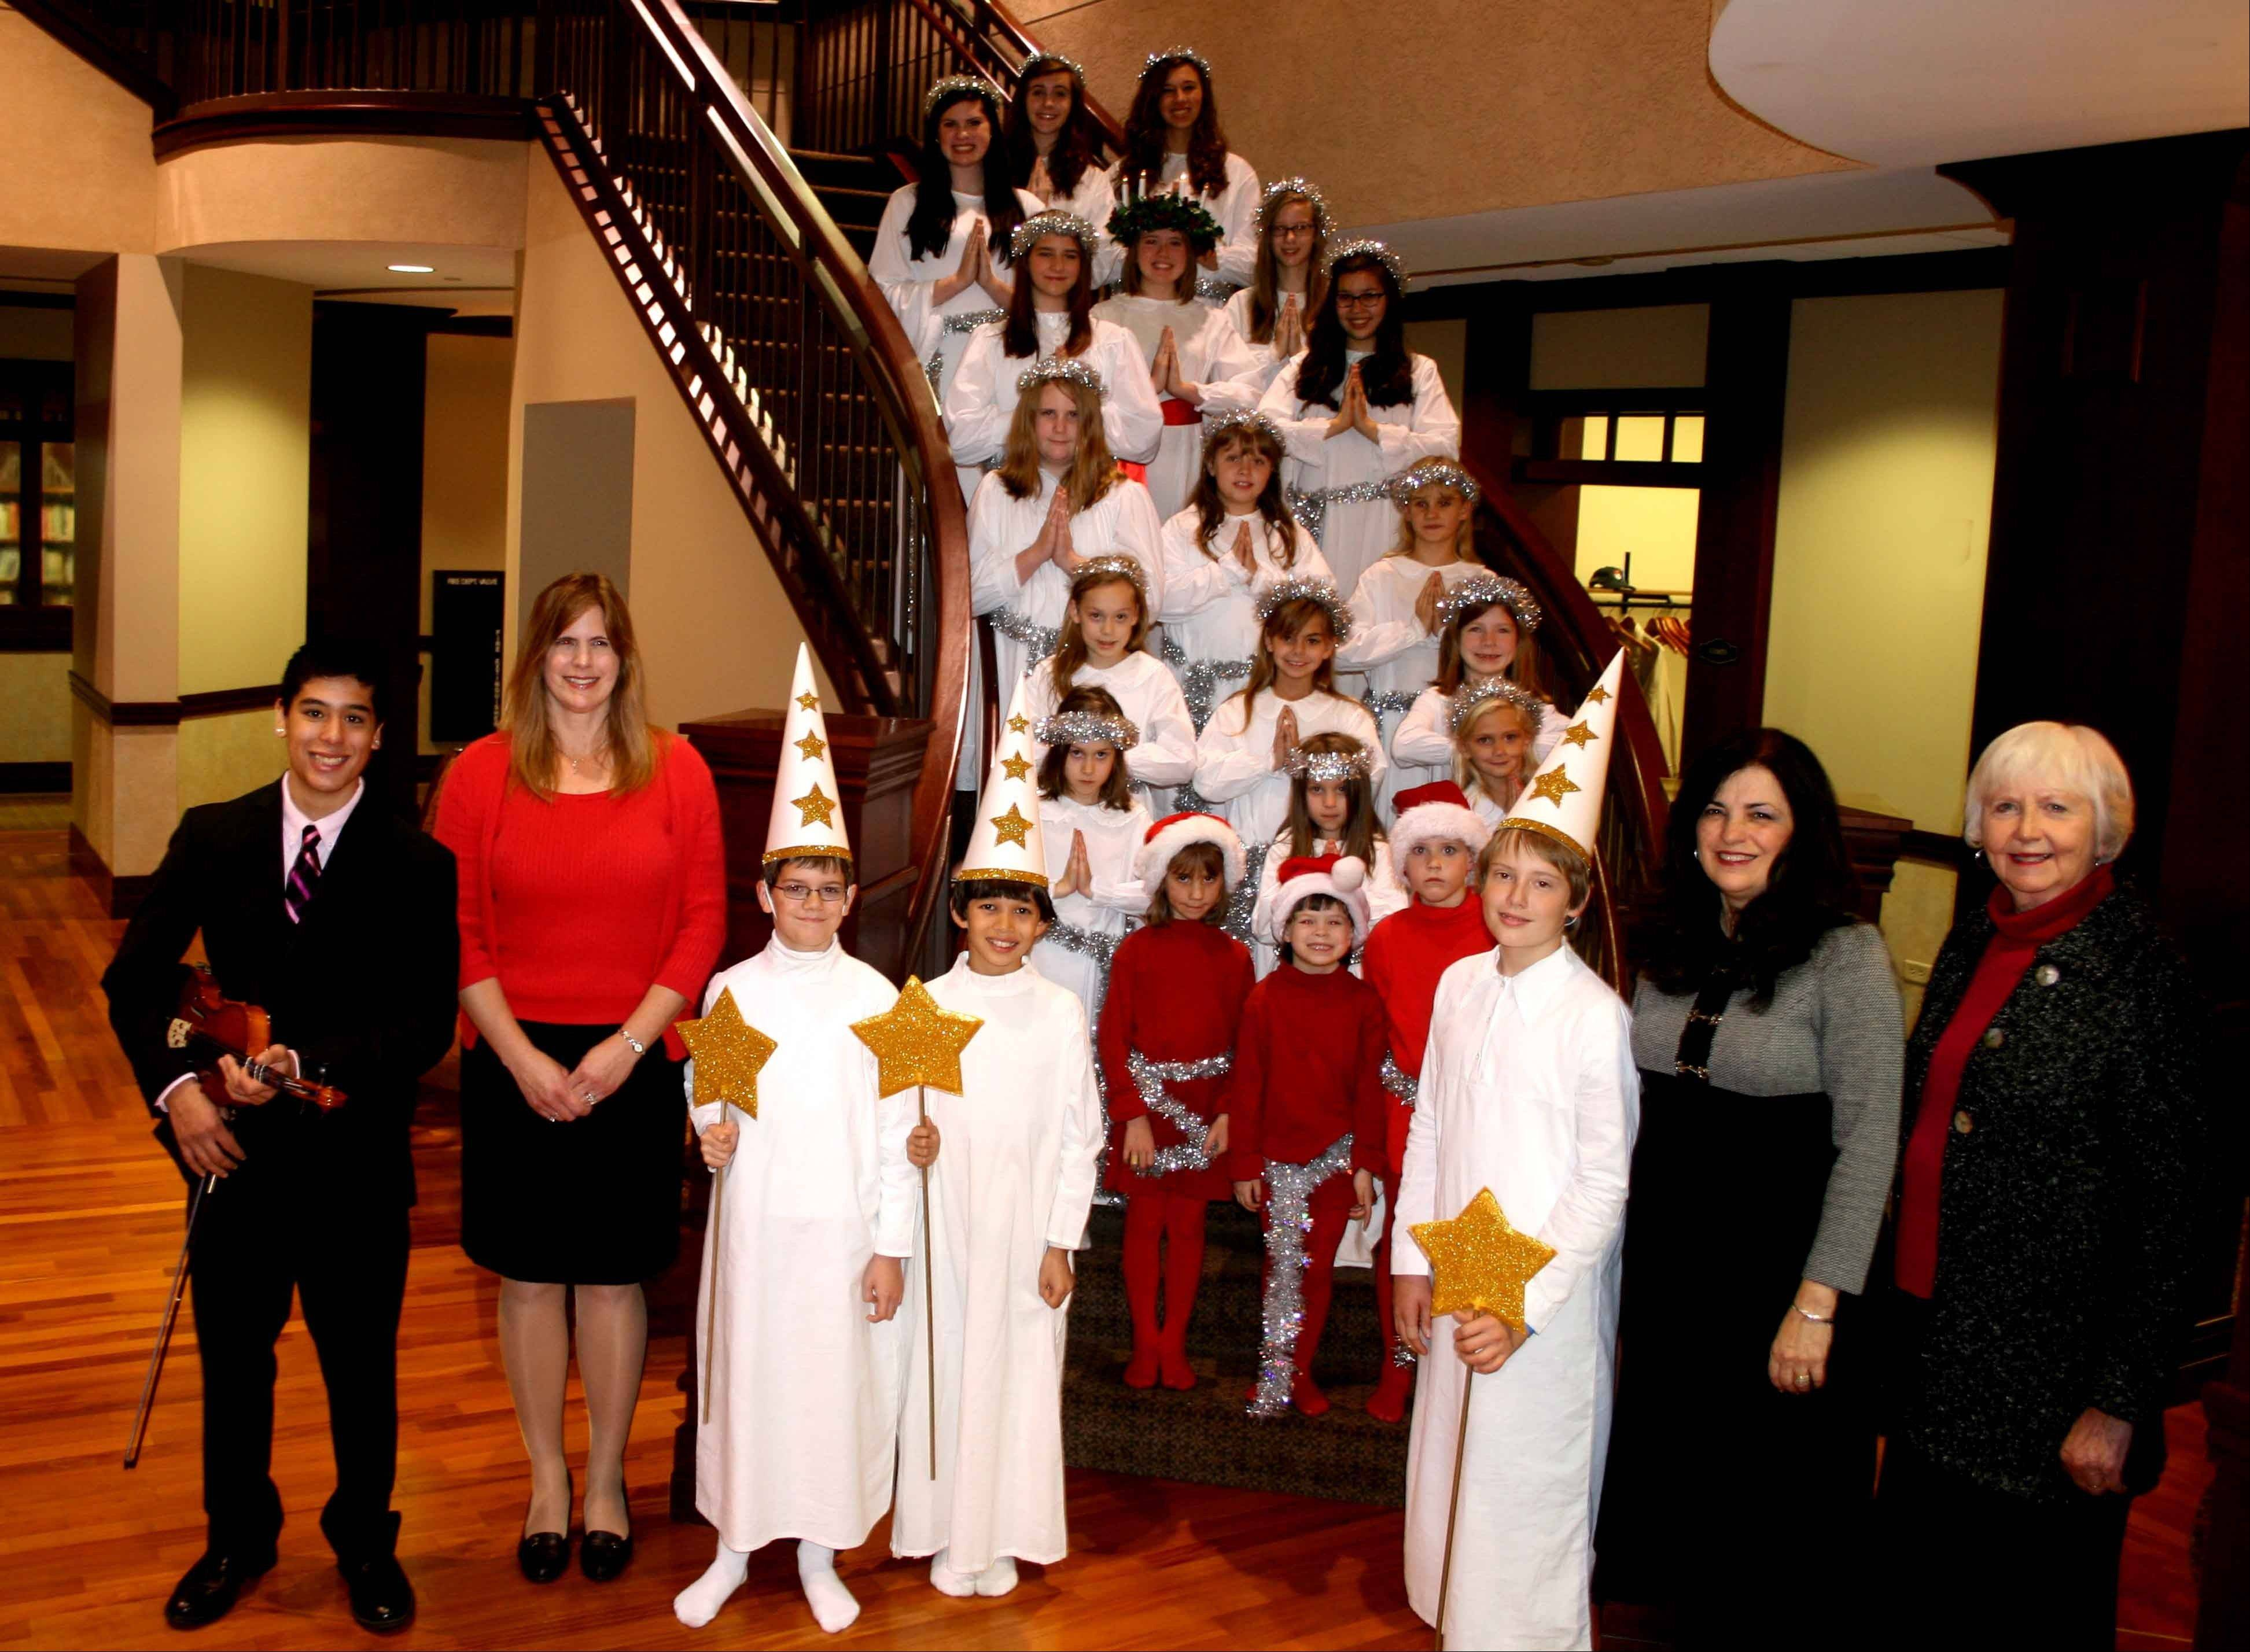 Tickets available for the Swedish American Children's Choir's 14th annual Swedish Christmas and St. Lucia Festival on Saturday, Dec. 1.